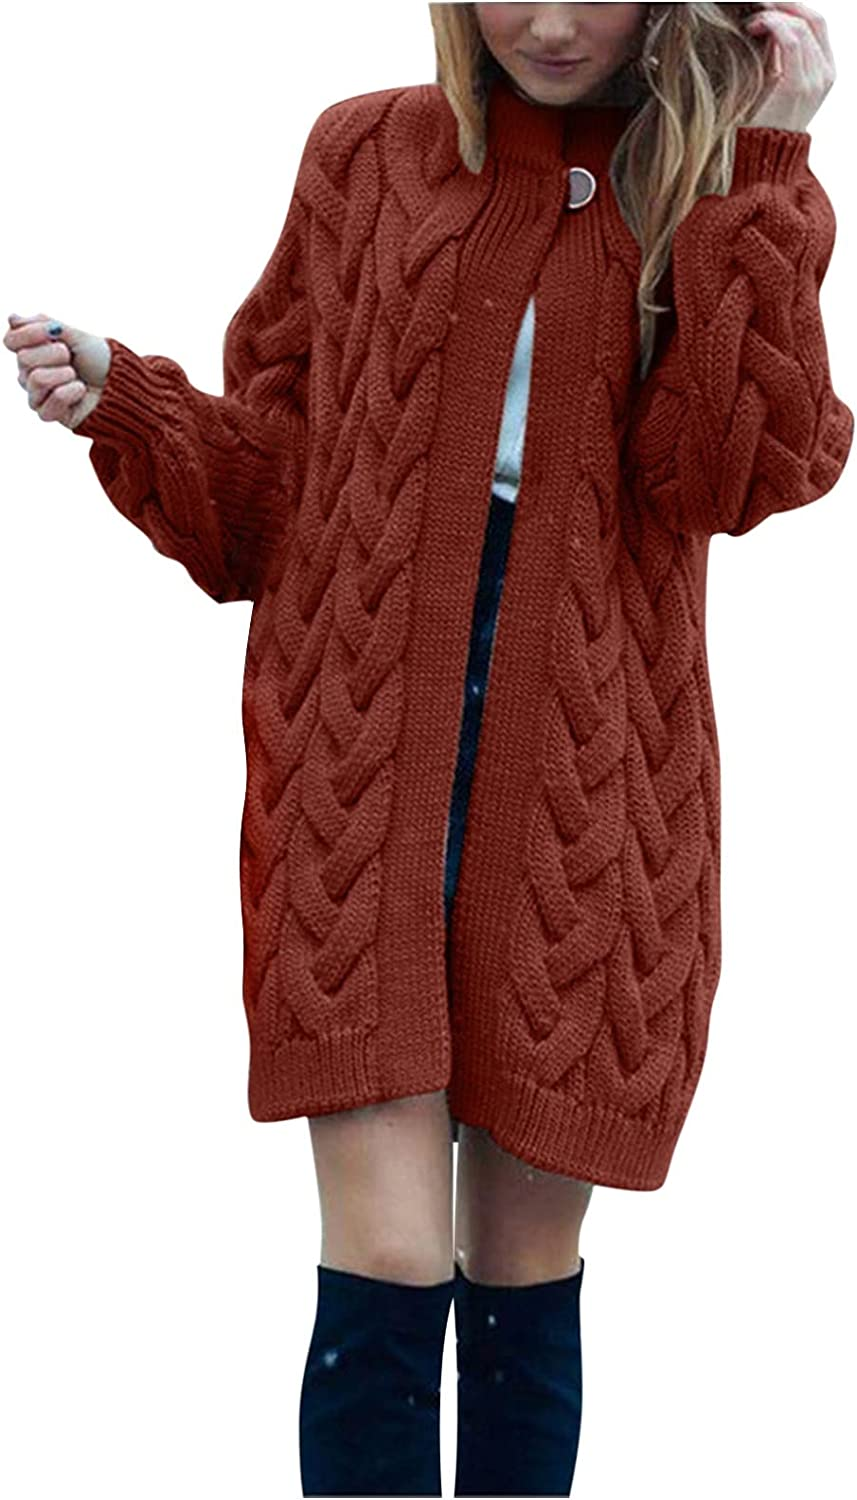 YfiDSJFGJ White Cardigan Sweaters for Women Coat Solid Color Knit Cable Flower Cardigan Sweater,Fall Sweaters for Women